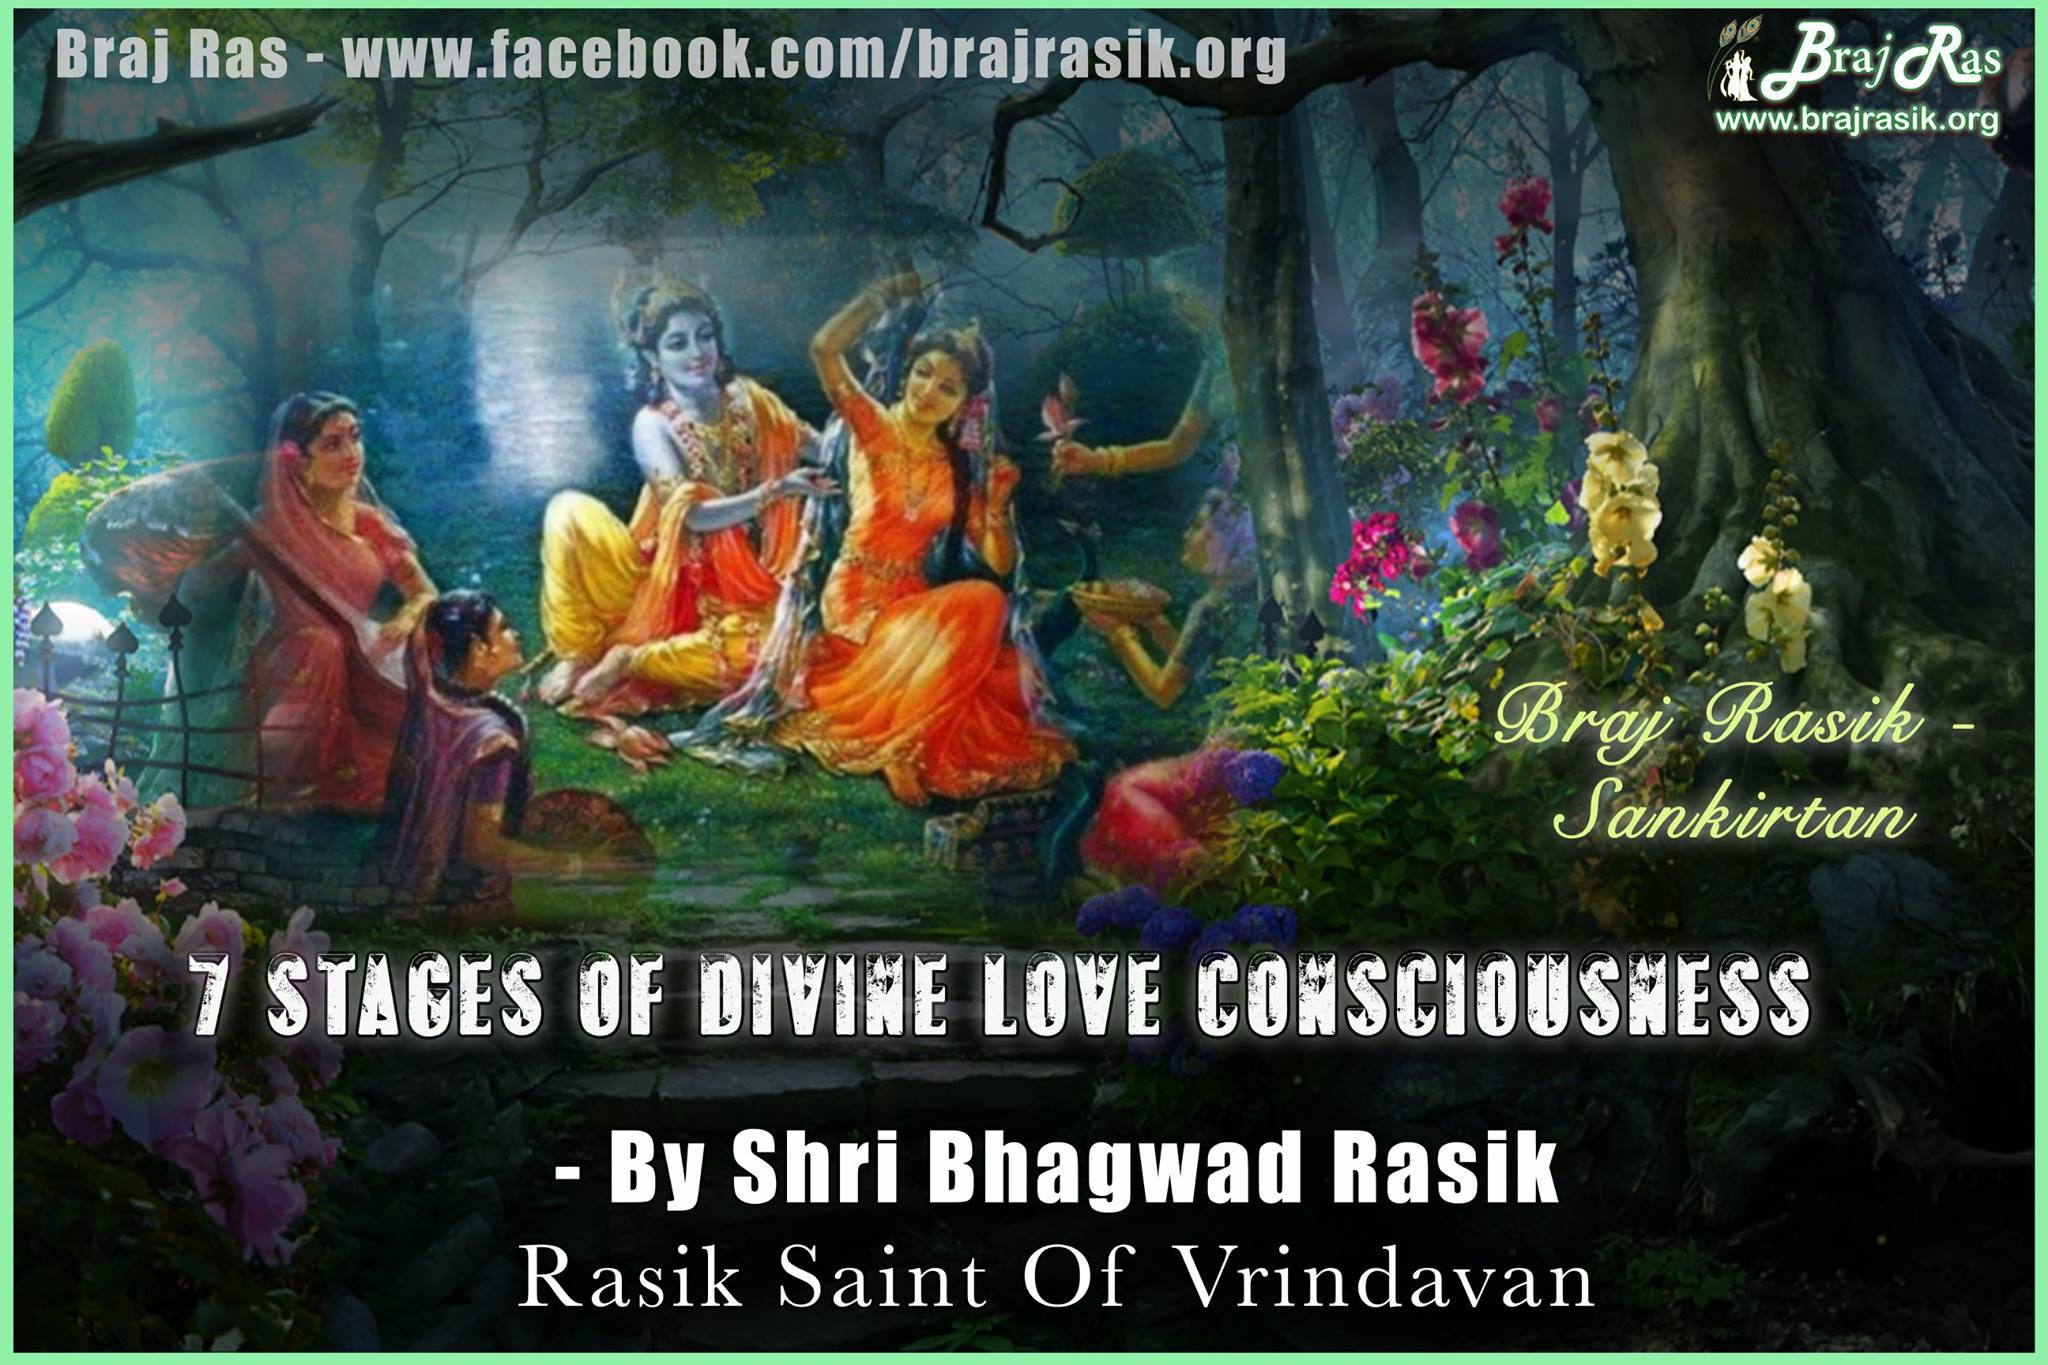 Seven Stages of Divine Love Consciousness -  Shri Bhagwad Rasik